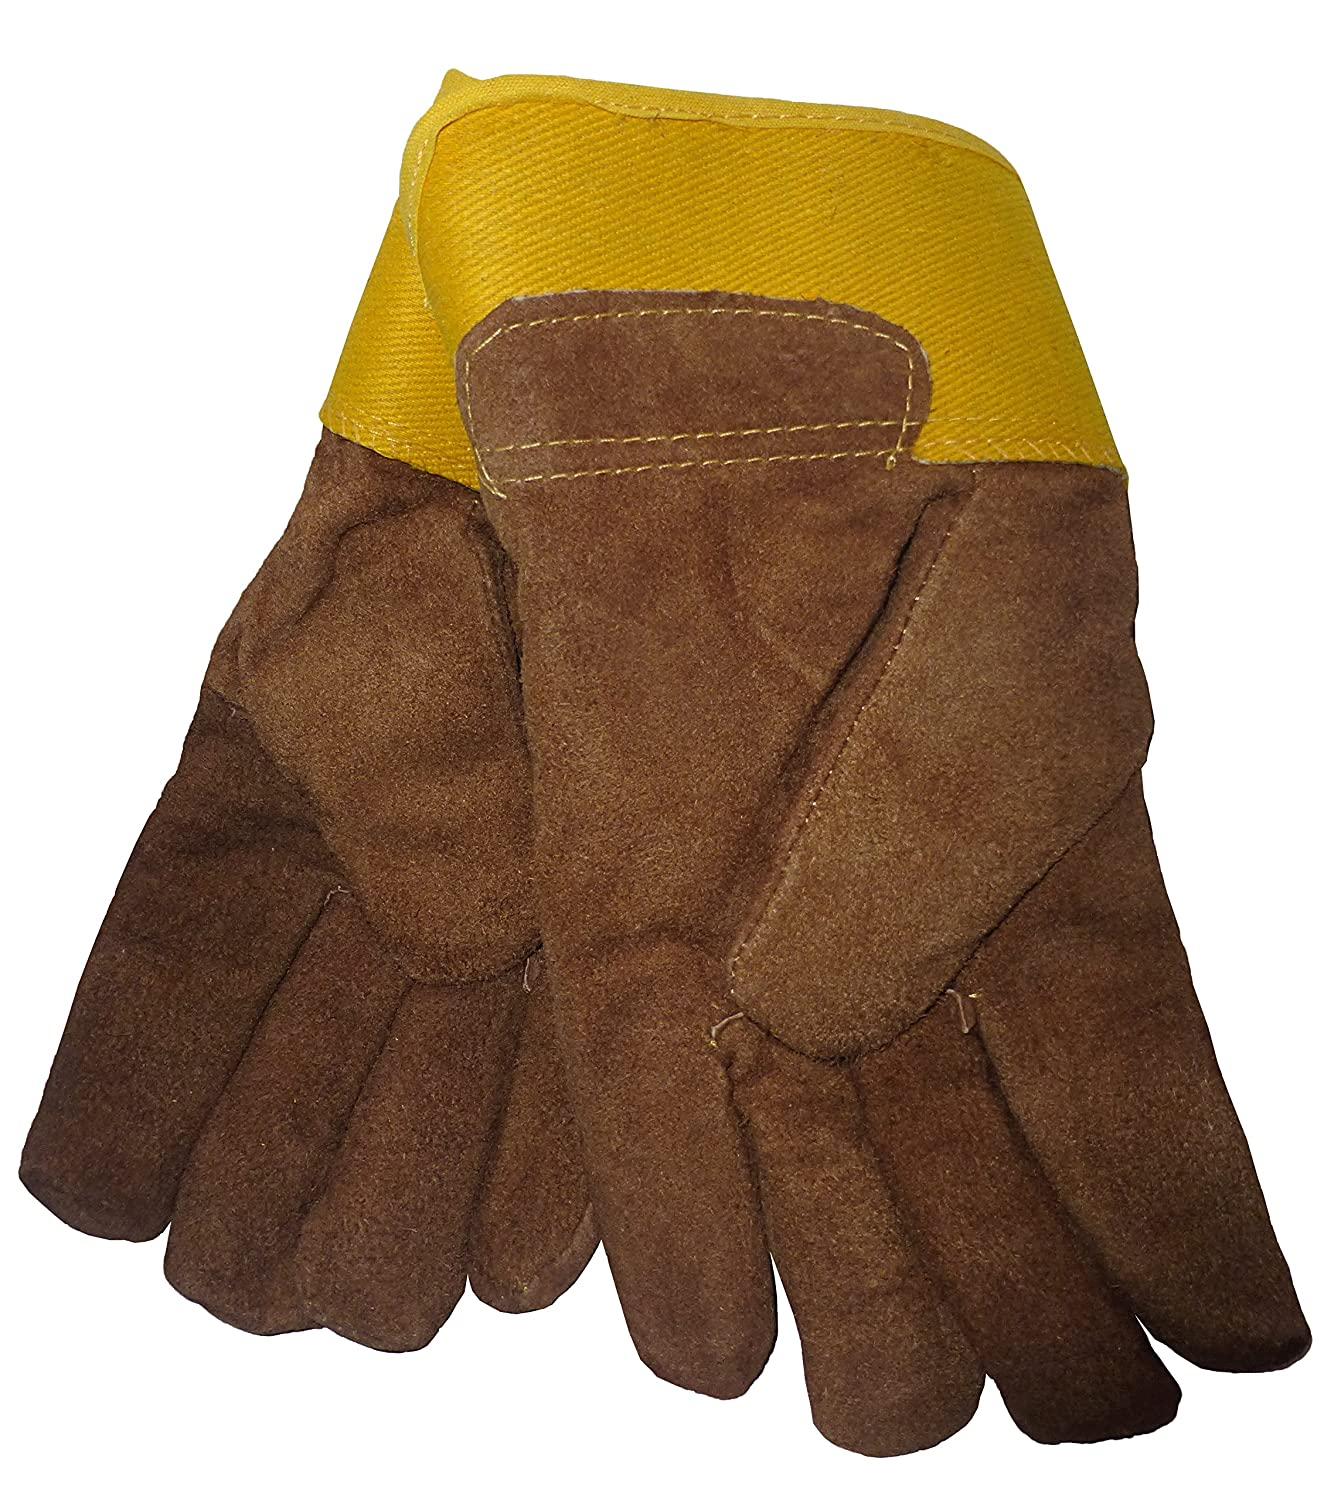 Insulated leather work gloves amazon - Amazon Com Mens B G Heavy Work Insulated Fleece Pile Lined Leather Winter Gloves Xl Clothing